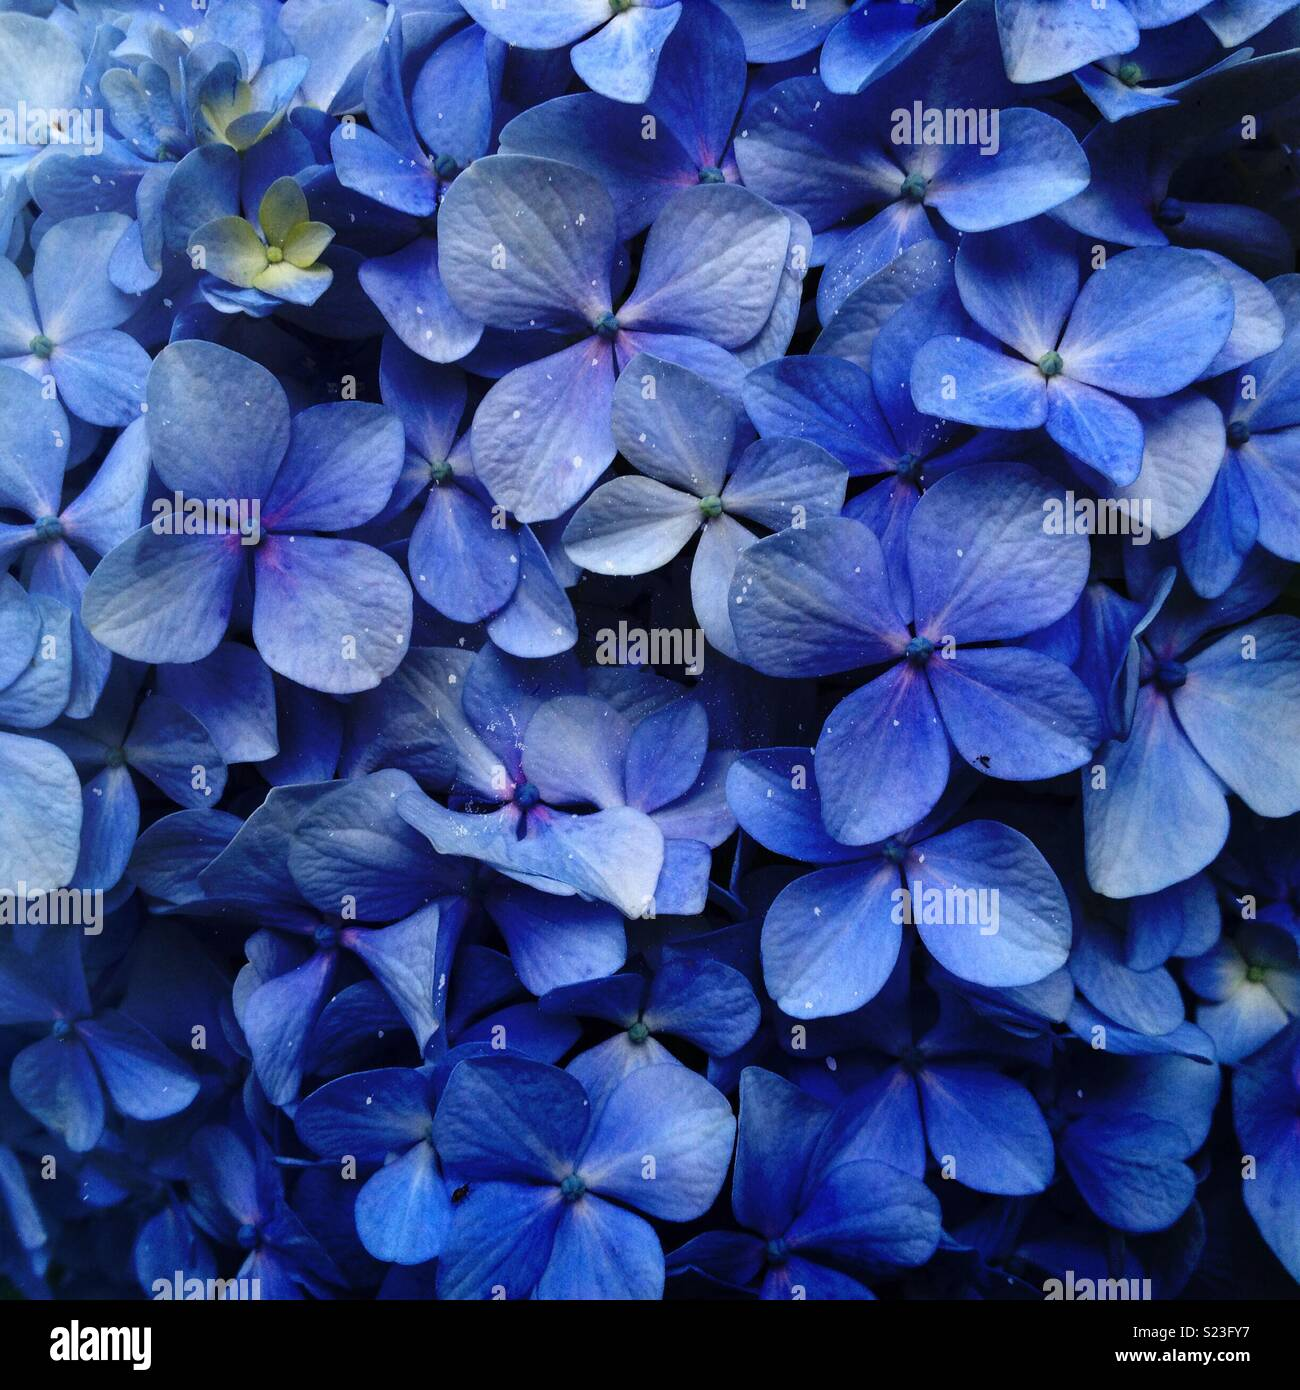 Closeup of a blue hortensia flower, hydrangea - Stock Image